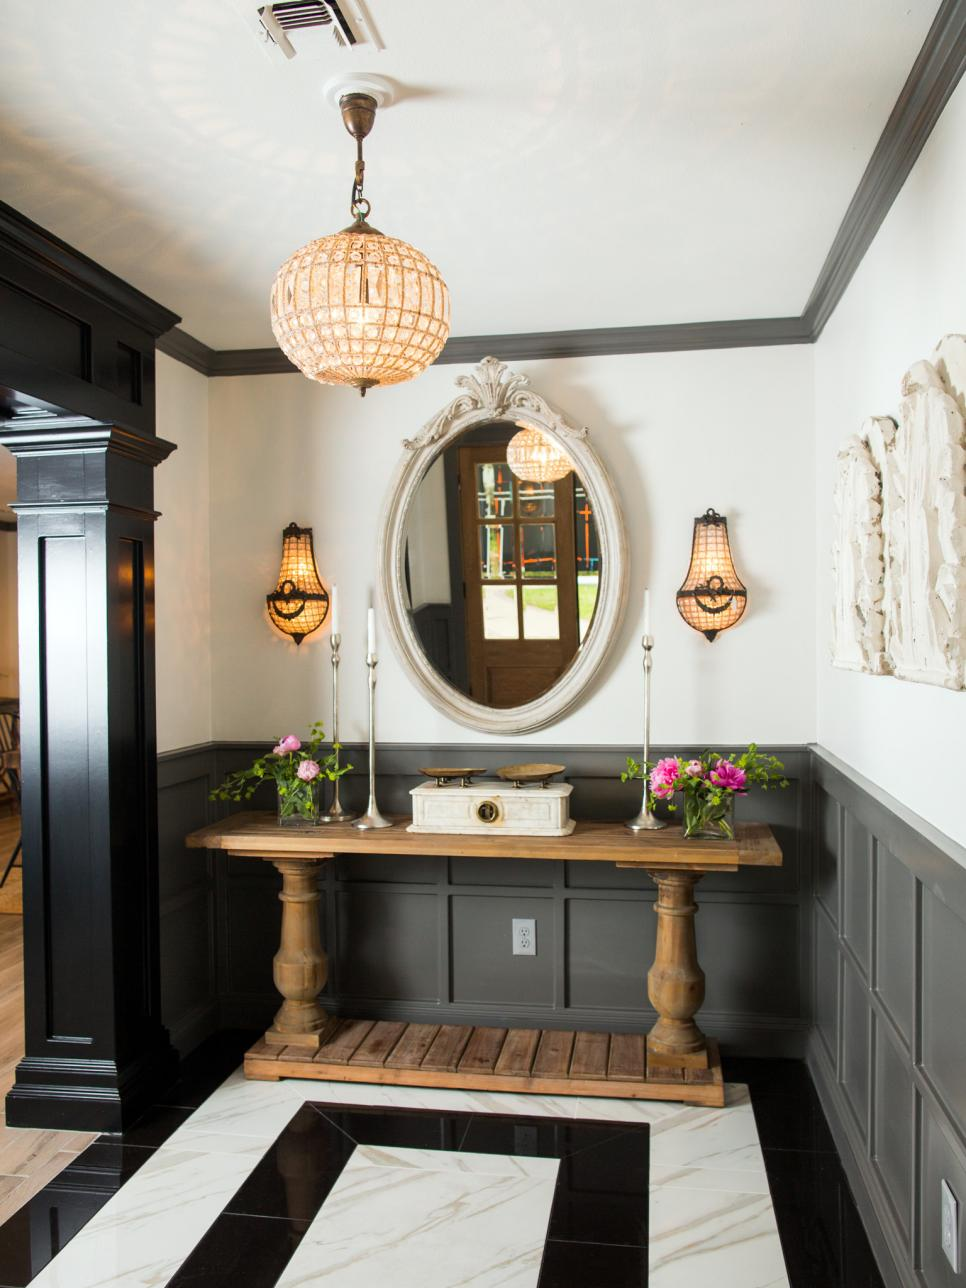 Difference Between Foyer And Entry : Hgtv fixer upper brick house is old world charm for newlyweds